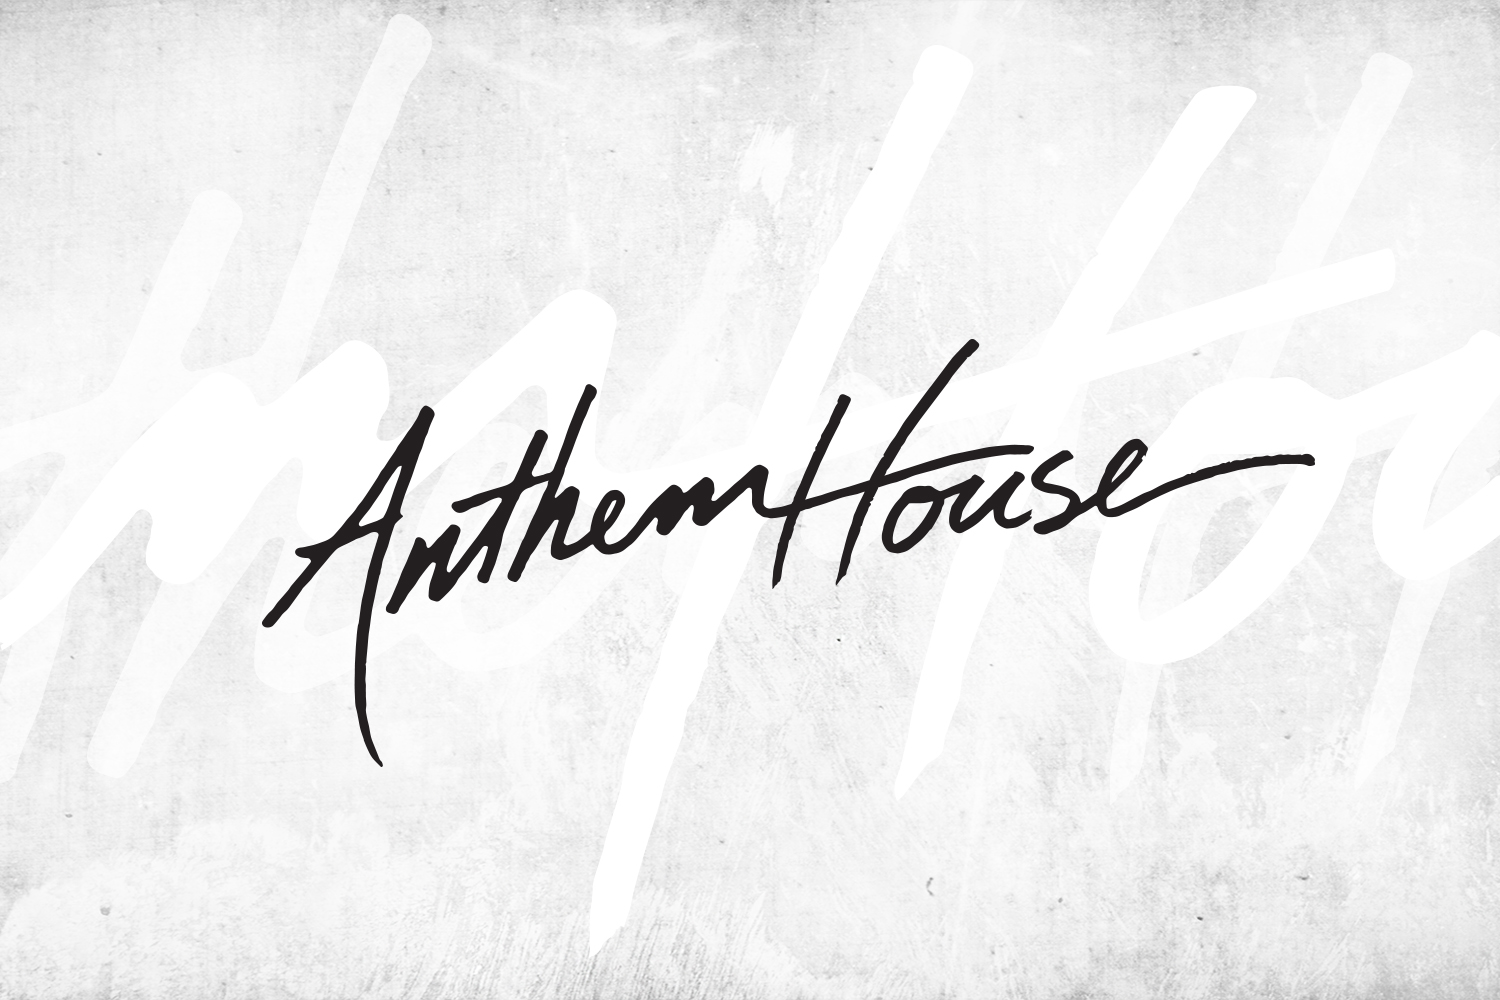 Anthem House [residential] {coming soon}